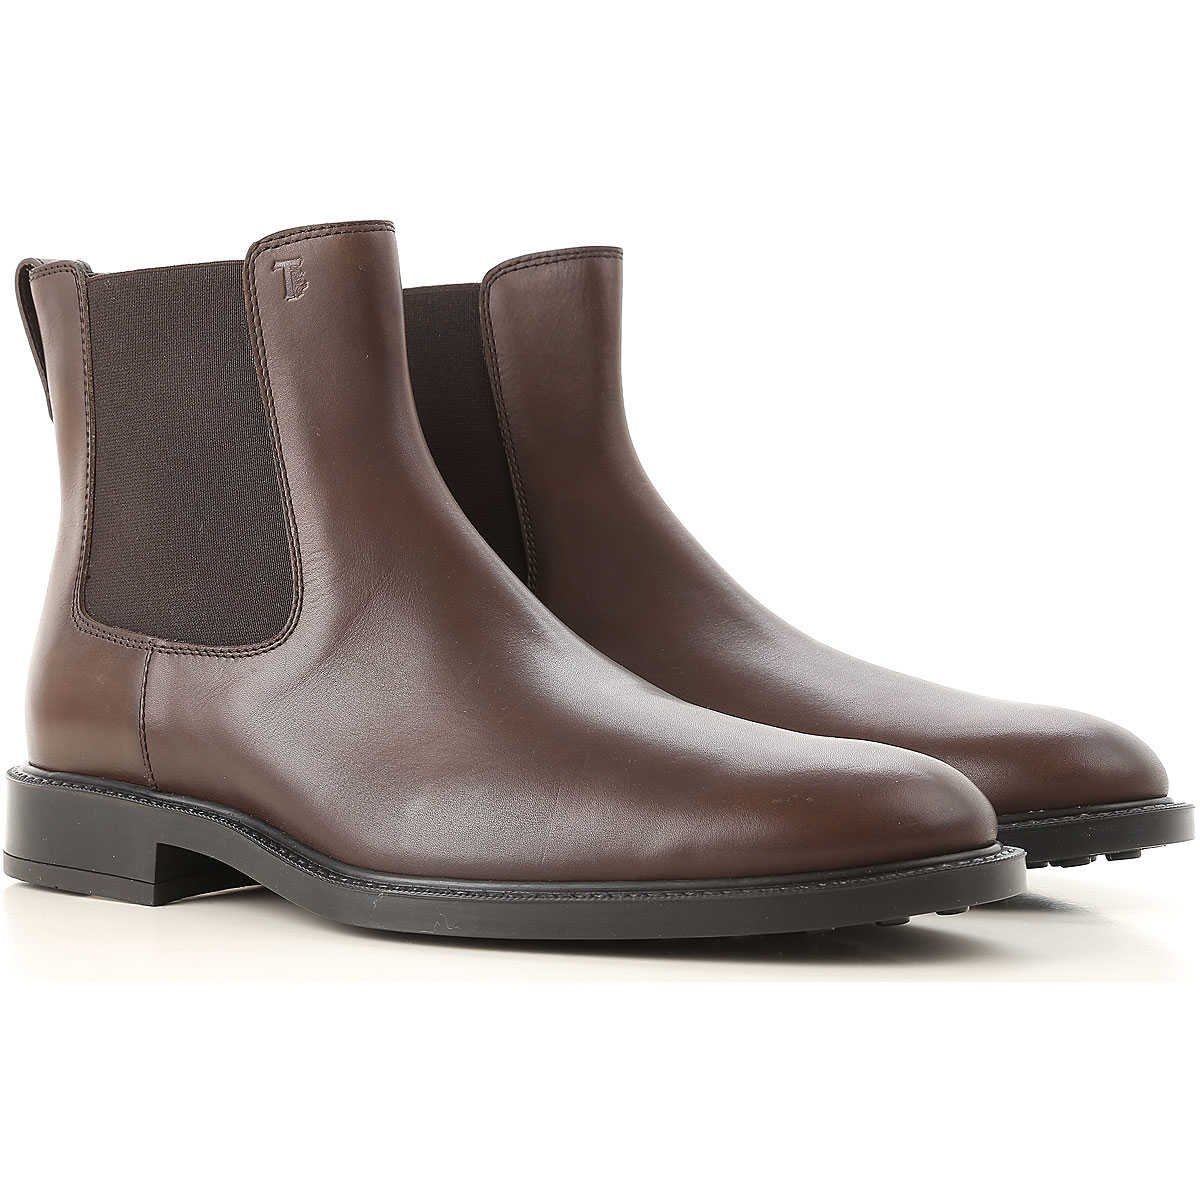 Tods Chelsea Boots for Men